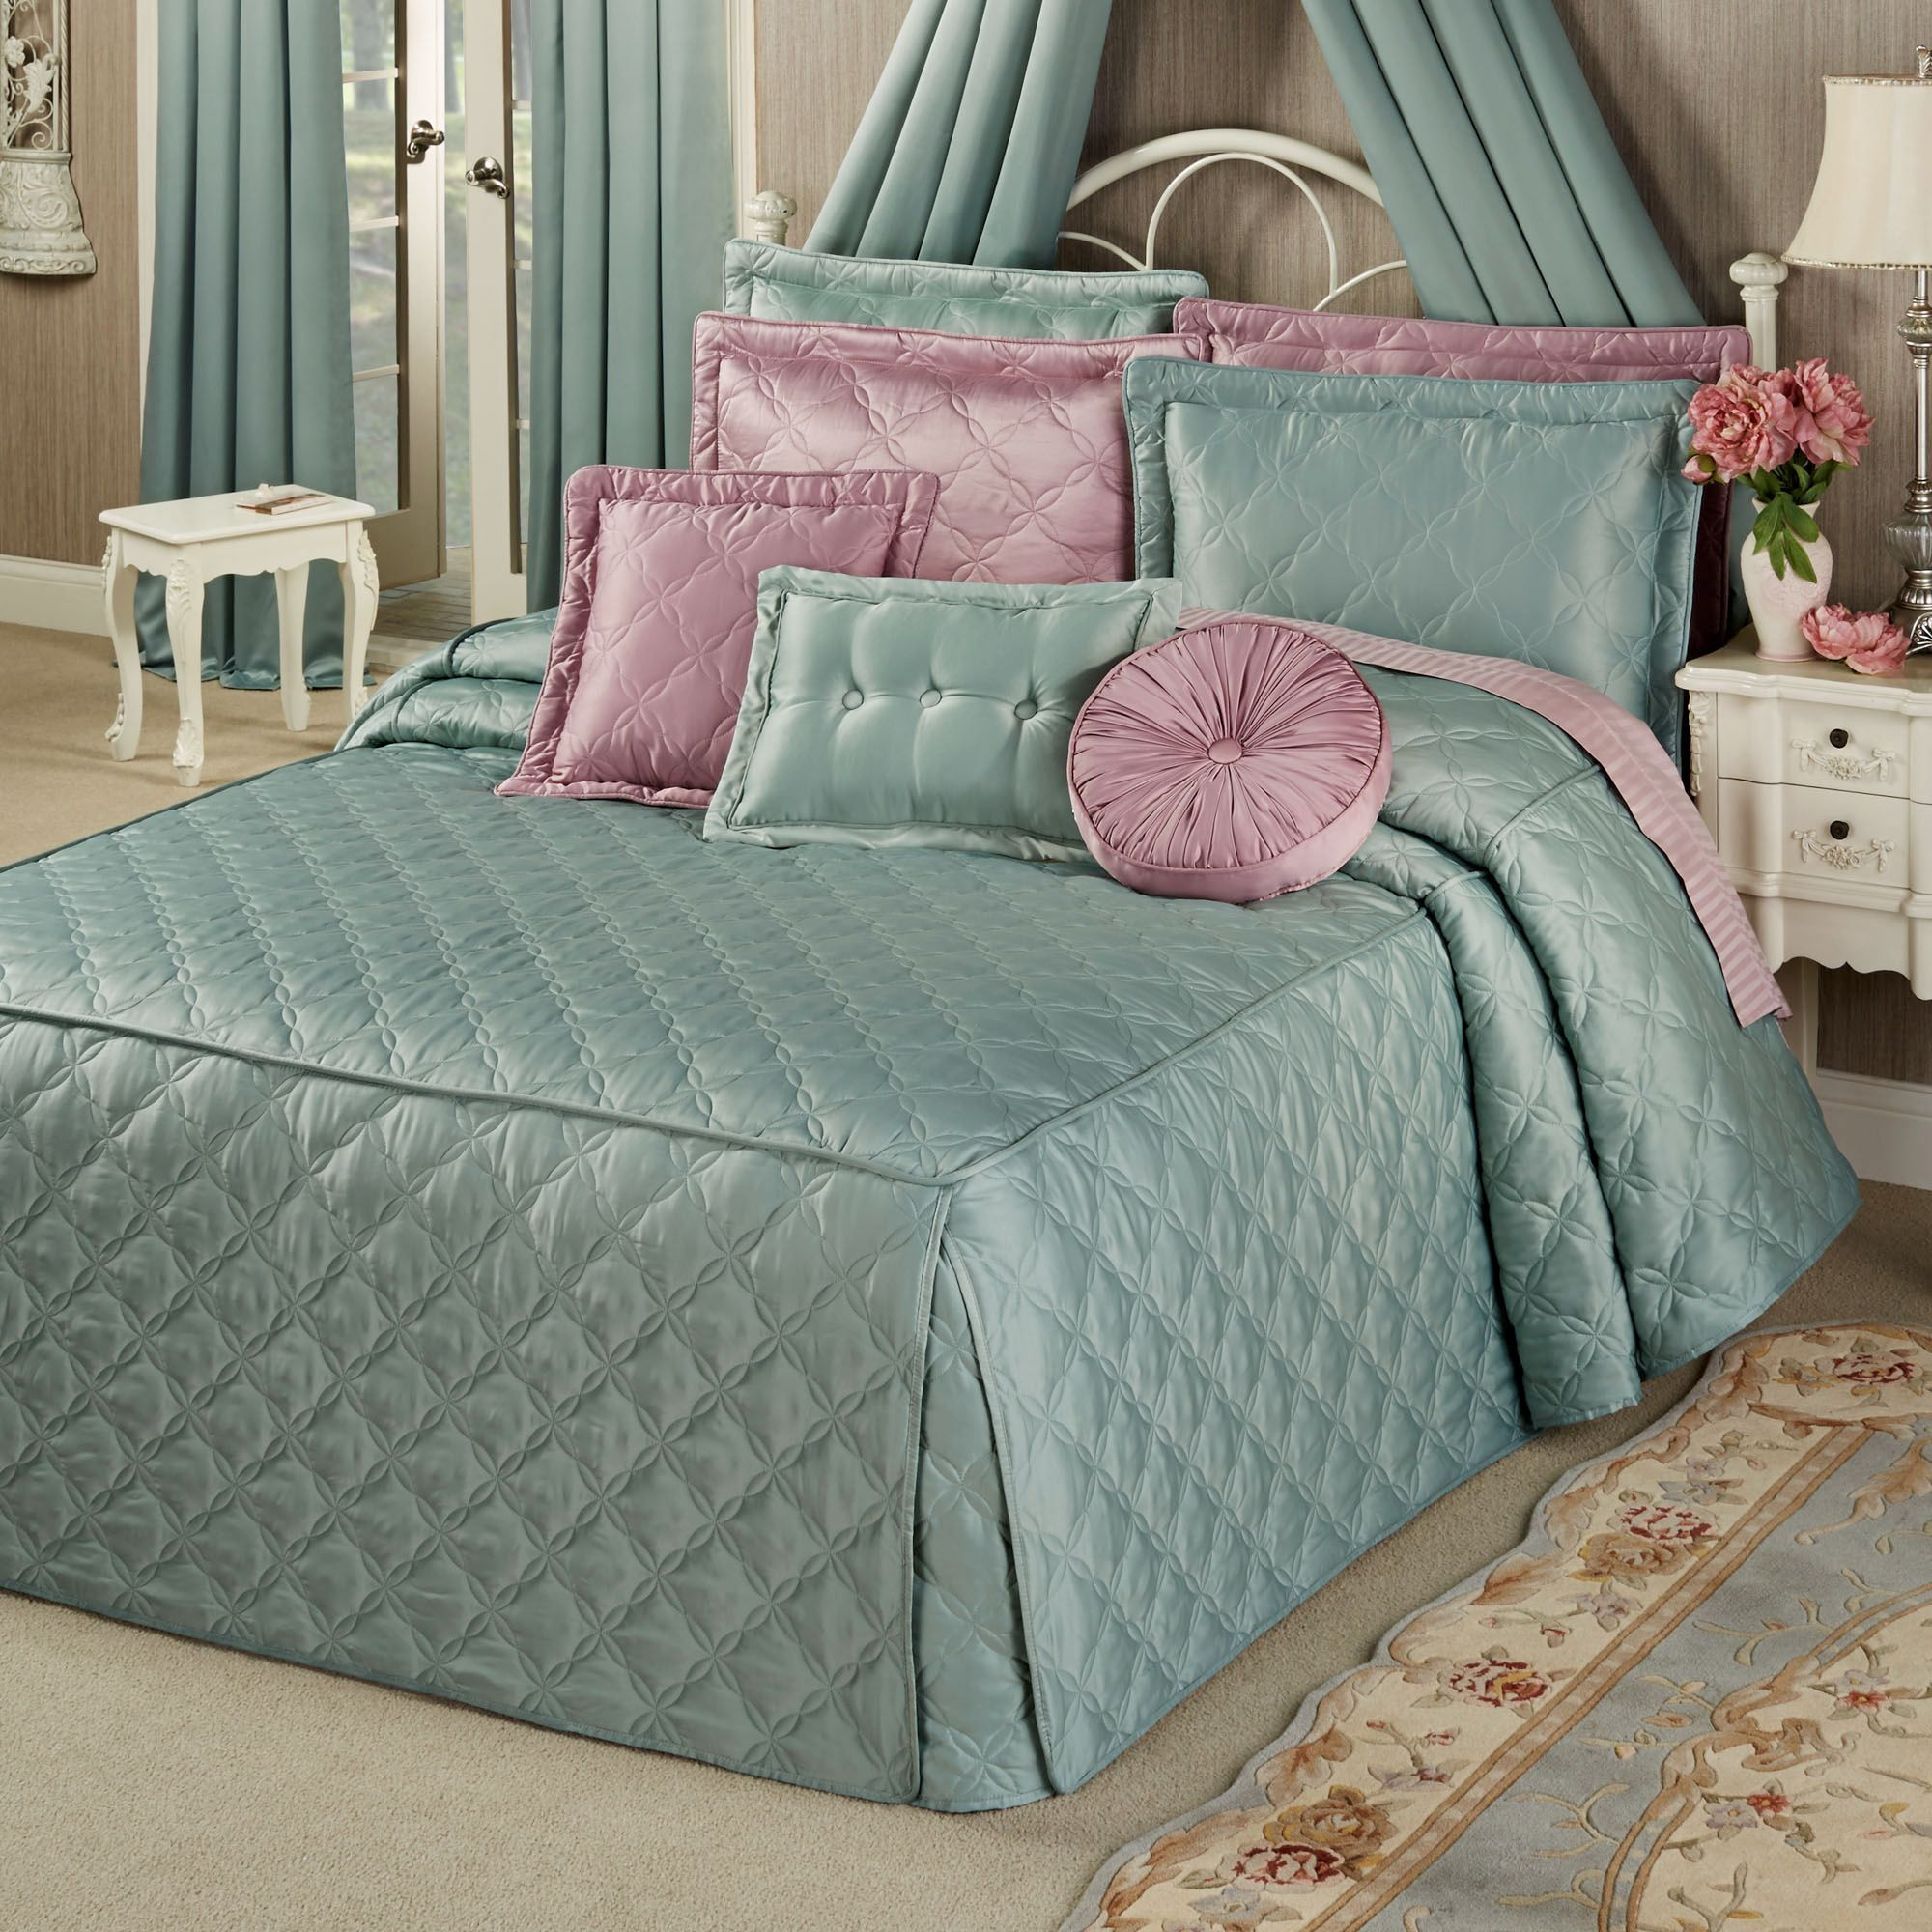 Color Classics(R) Oversized Fitted Bedspread Bed spreads